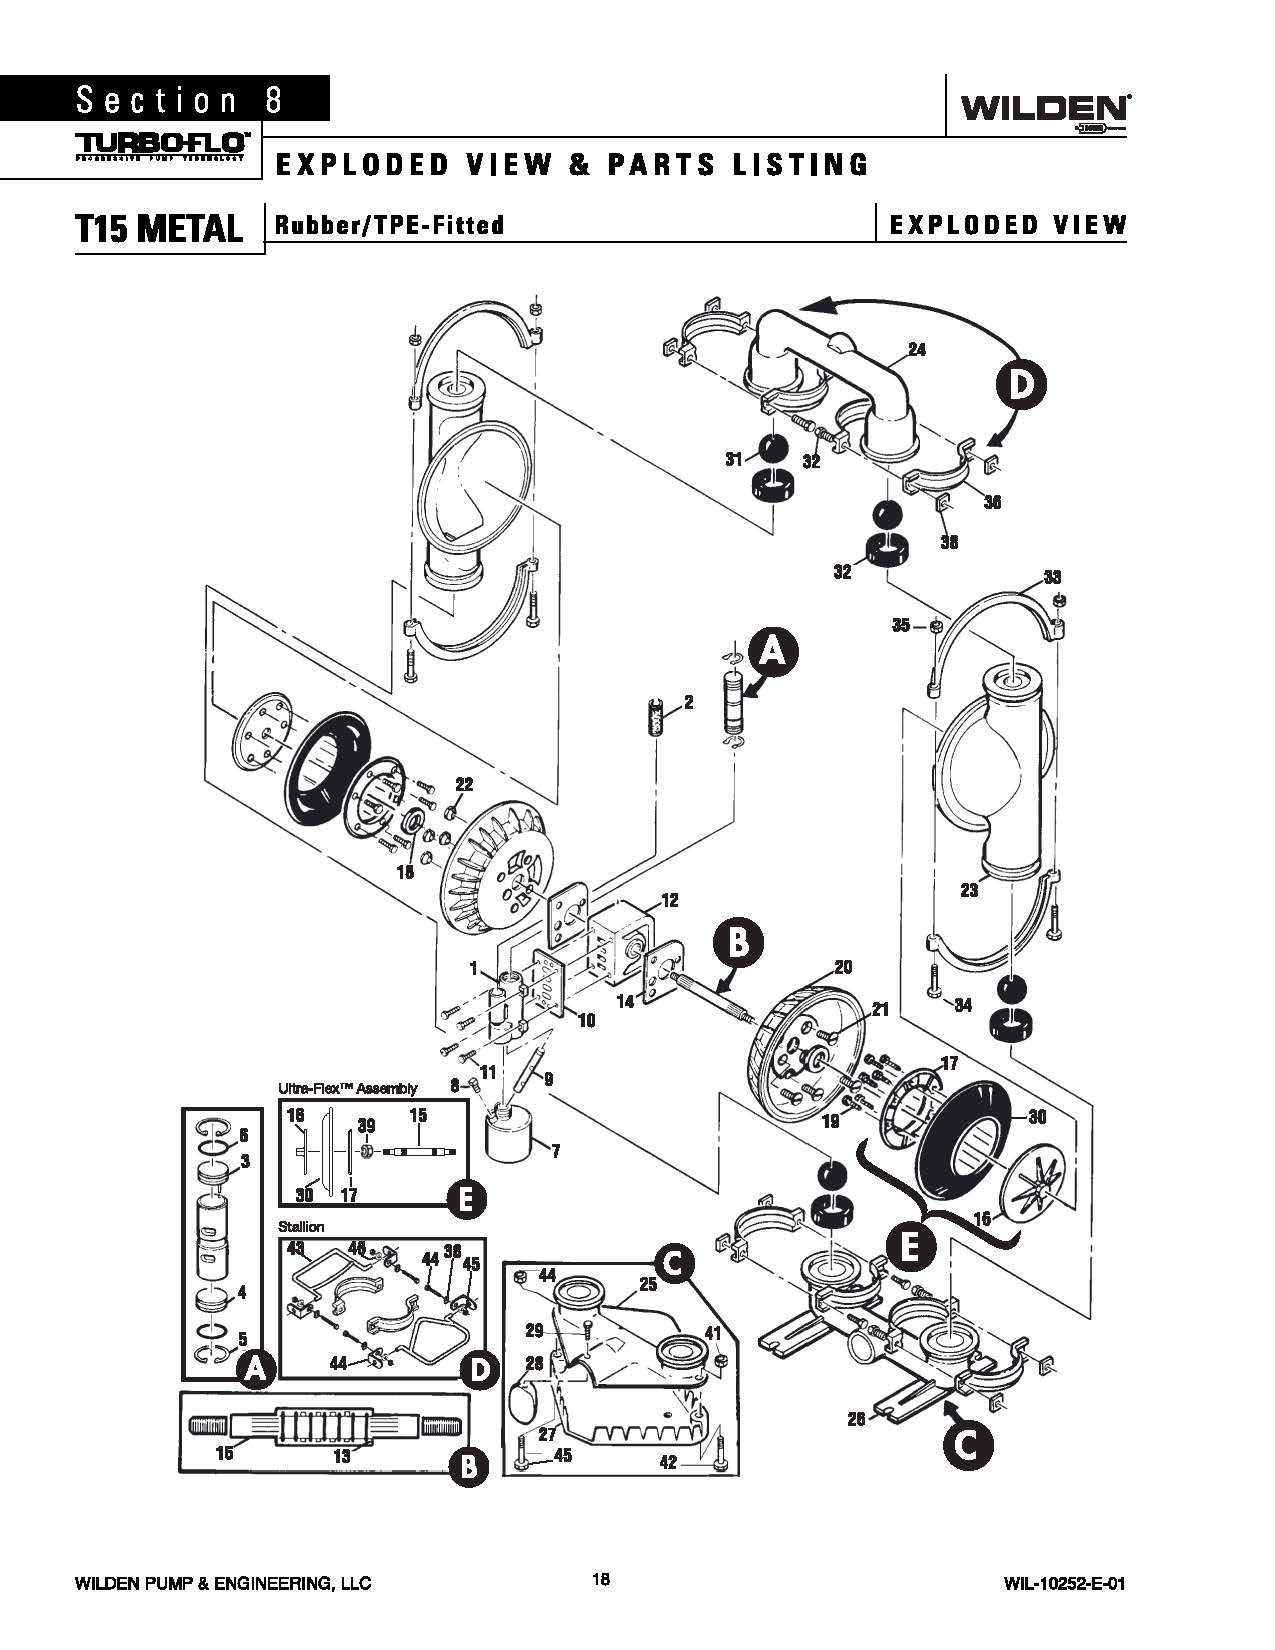 Wilden t15 original metal tpe rubber pumping solutions inc wilden t15 original metal tpe rubber exploded view part listing genuine wilden oem replacement parts and repair kits for wilden pump diaphragm pumps ccuart Choice Image